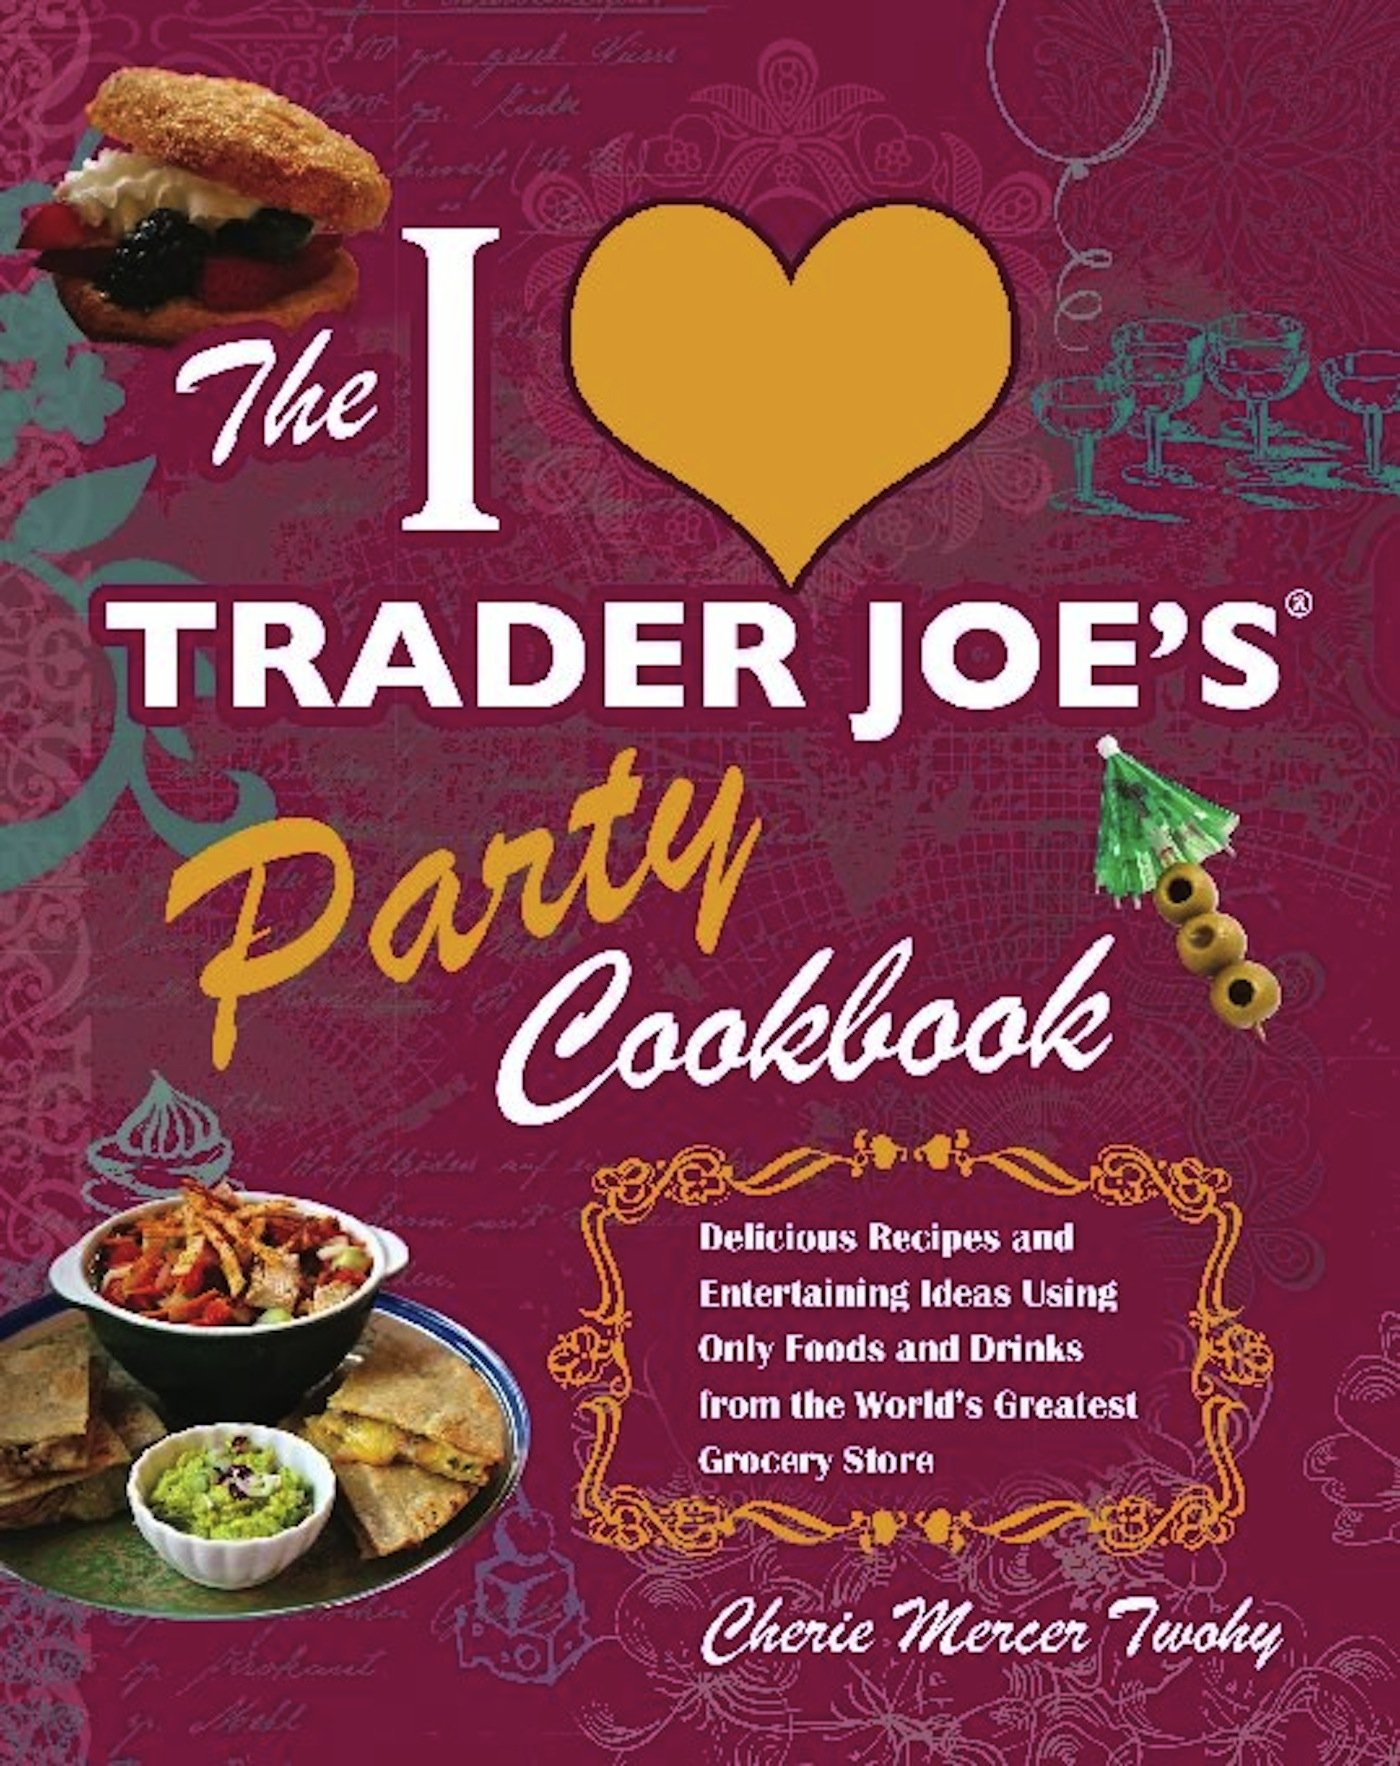 Mothers Day At Trader Joes In Madison >> The I Love Trader Joe S Party Cookbook Delicious Recipes And